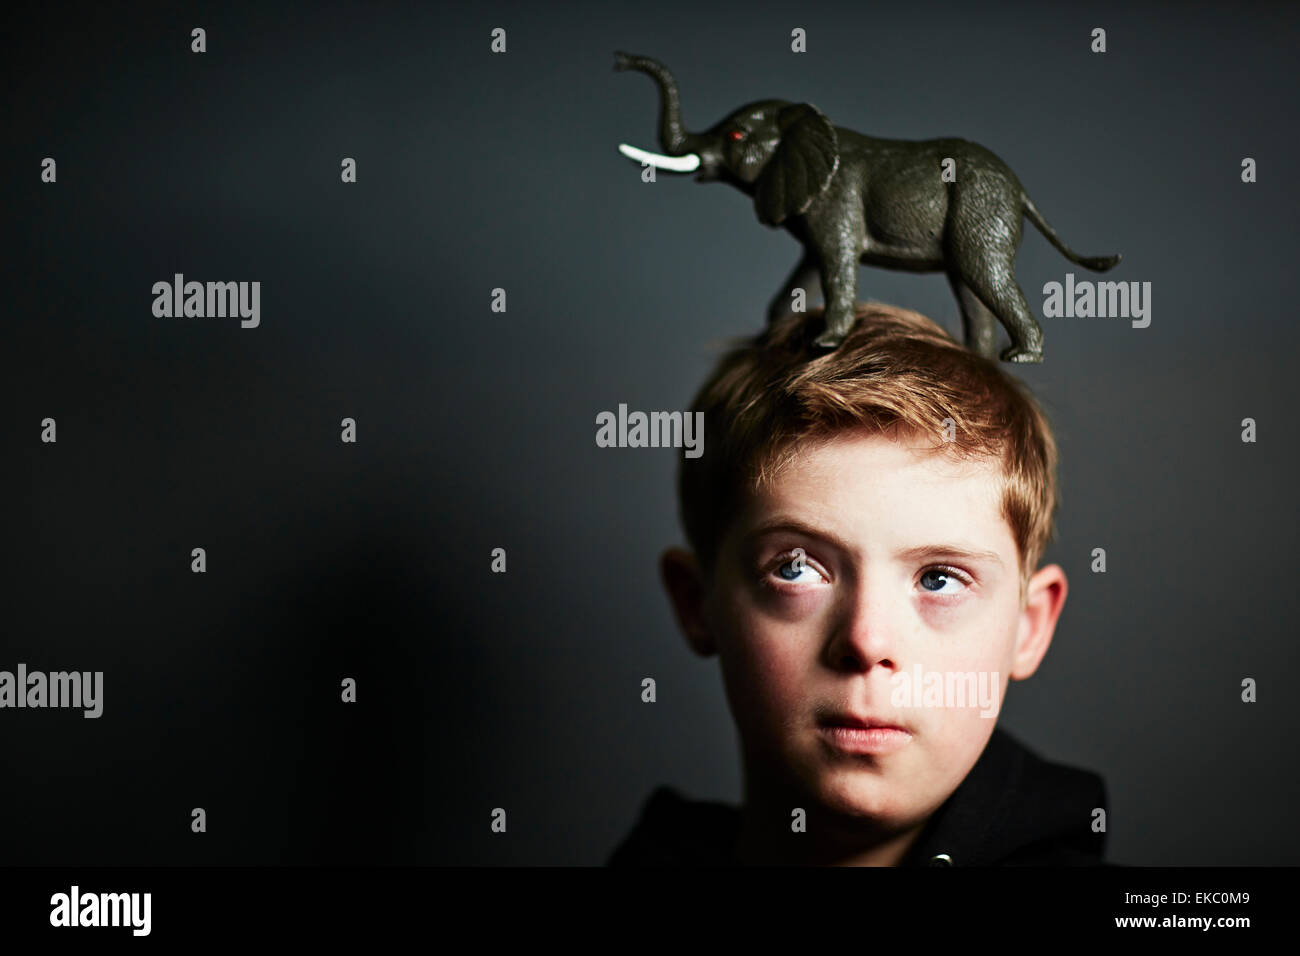 Boy with elephant toy on top of head - Stock Image